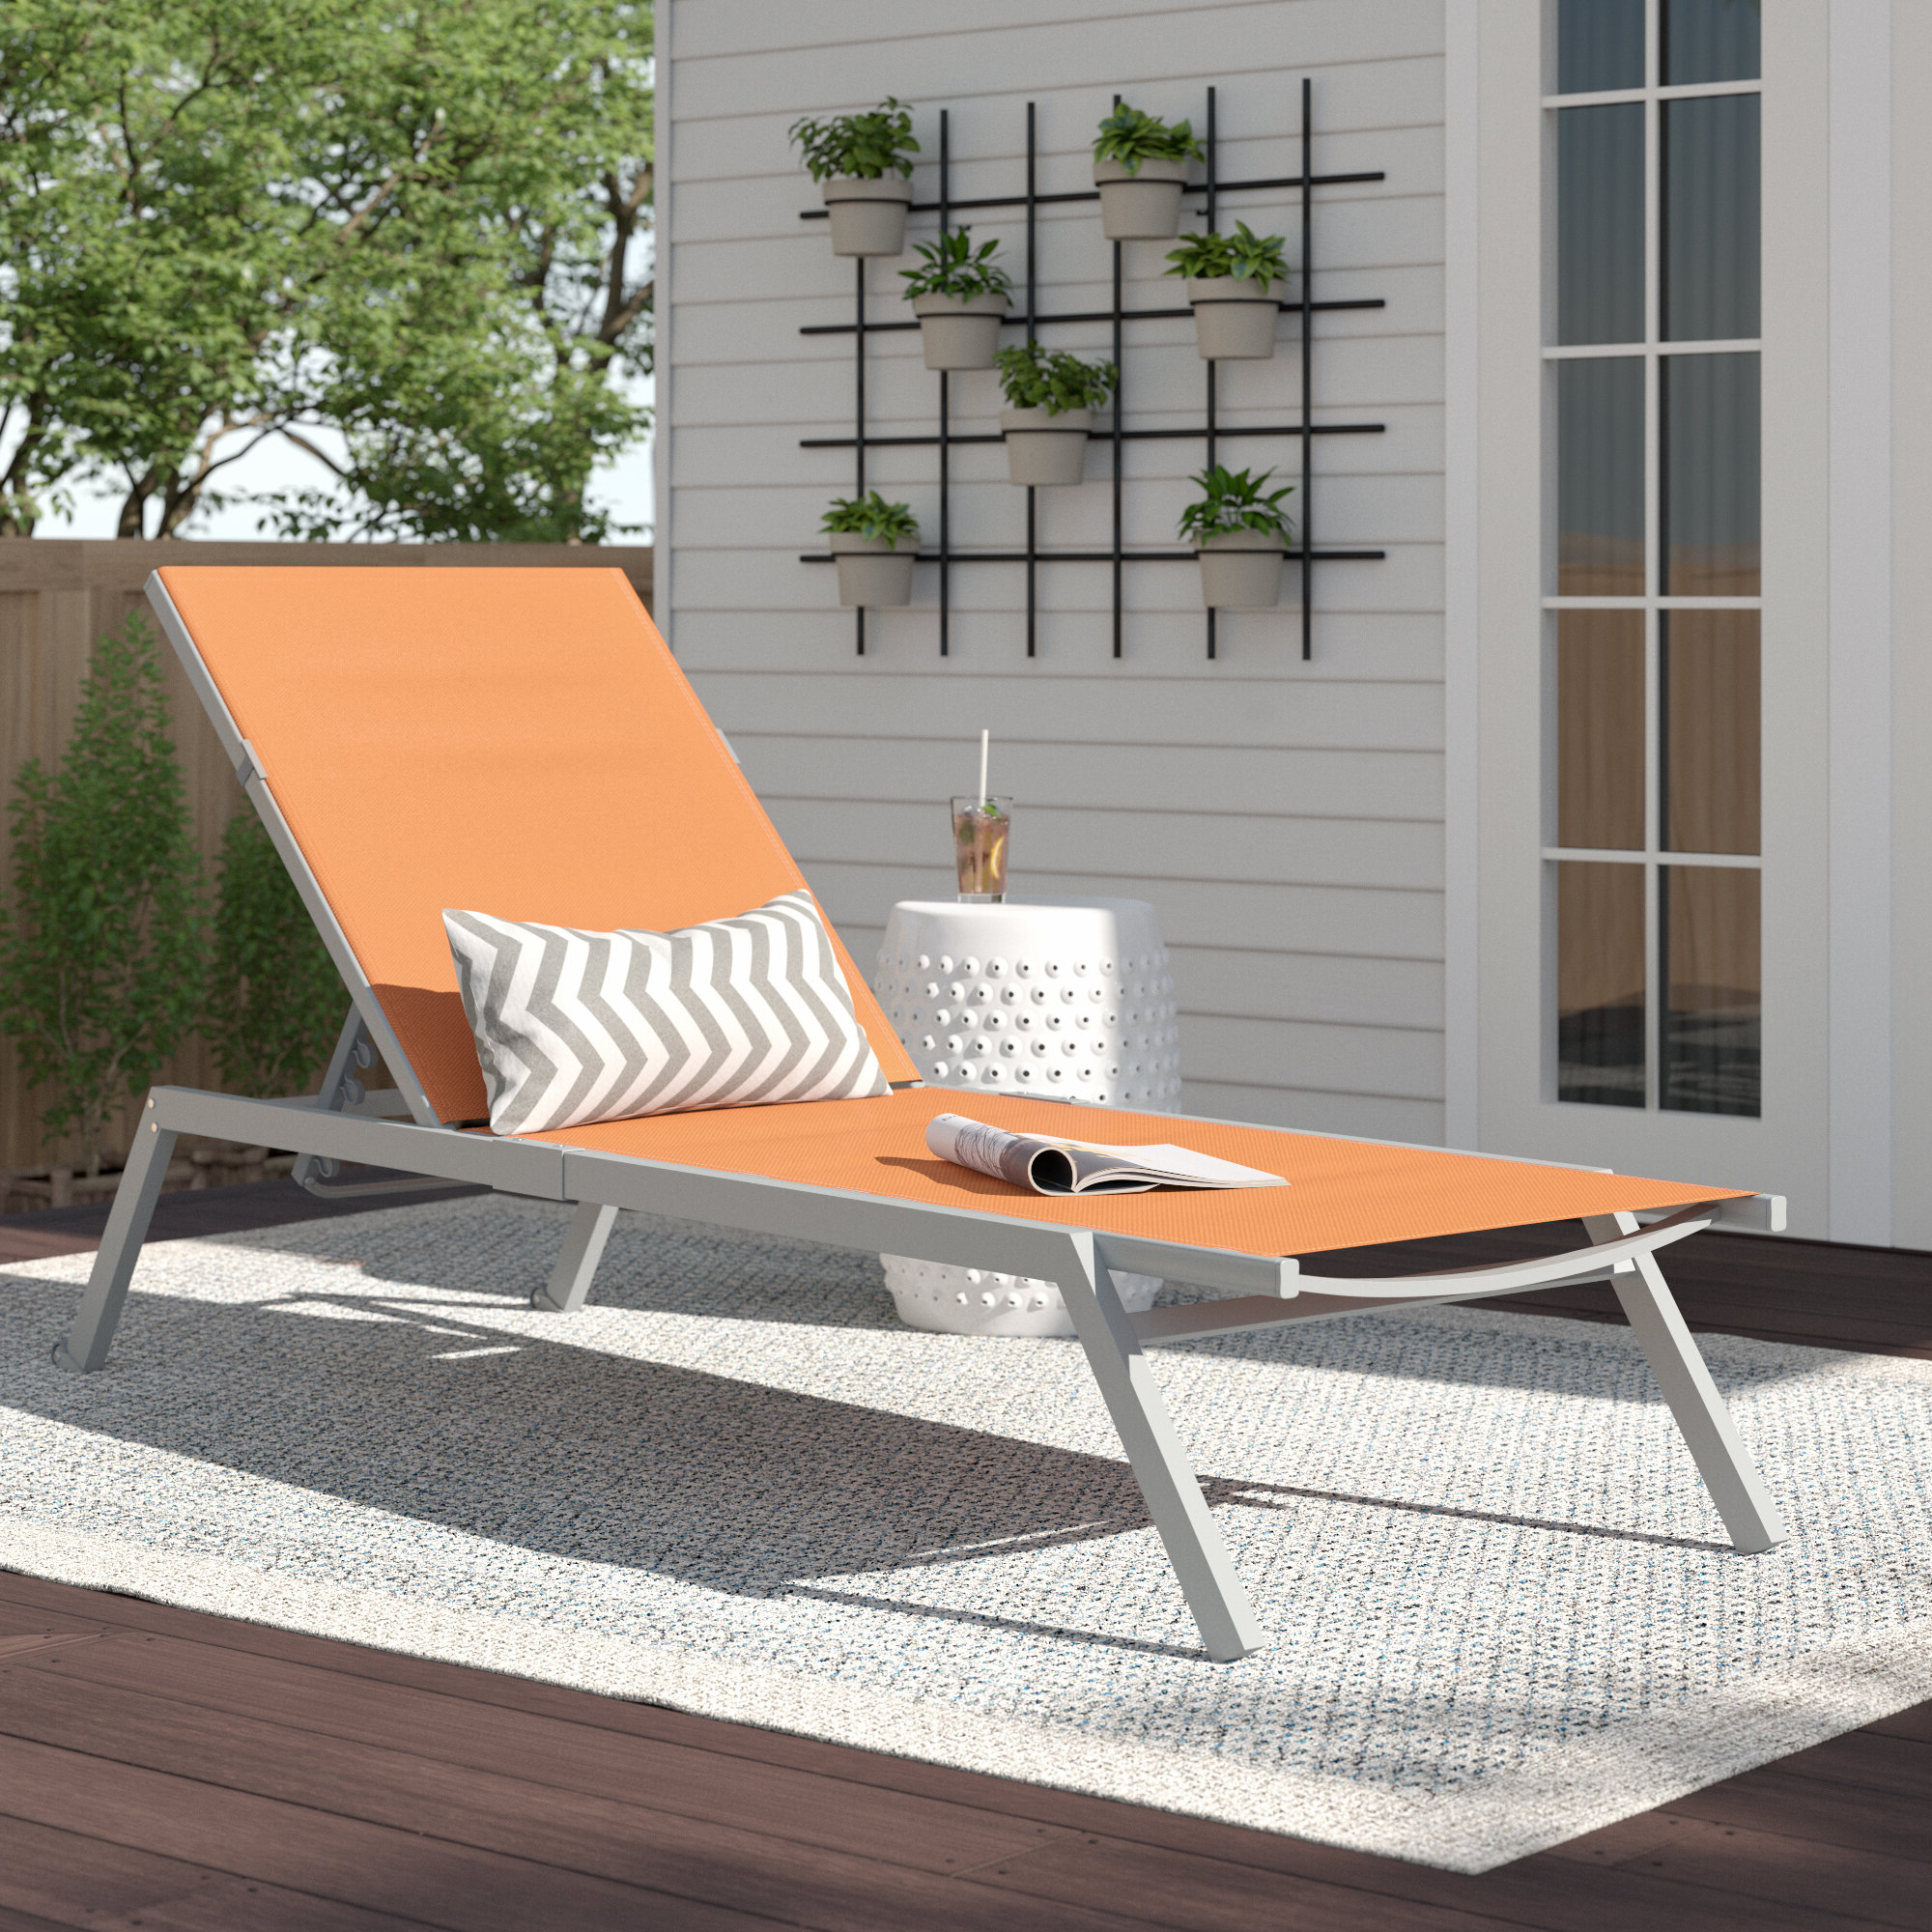 Adjustable Sling Fabric Patio Chaise Lounges Intended For Favorite Zipcode Design Rondo Adjustable Sling Reclining Chaise (View 5 of 25)